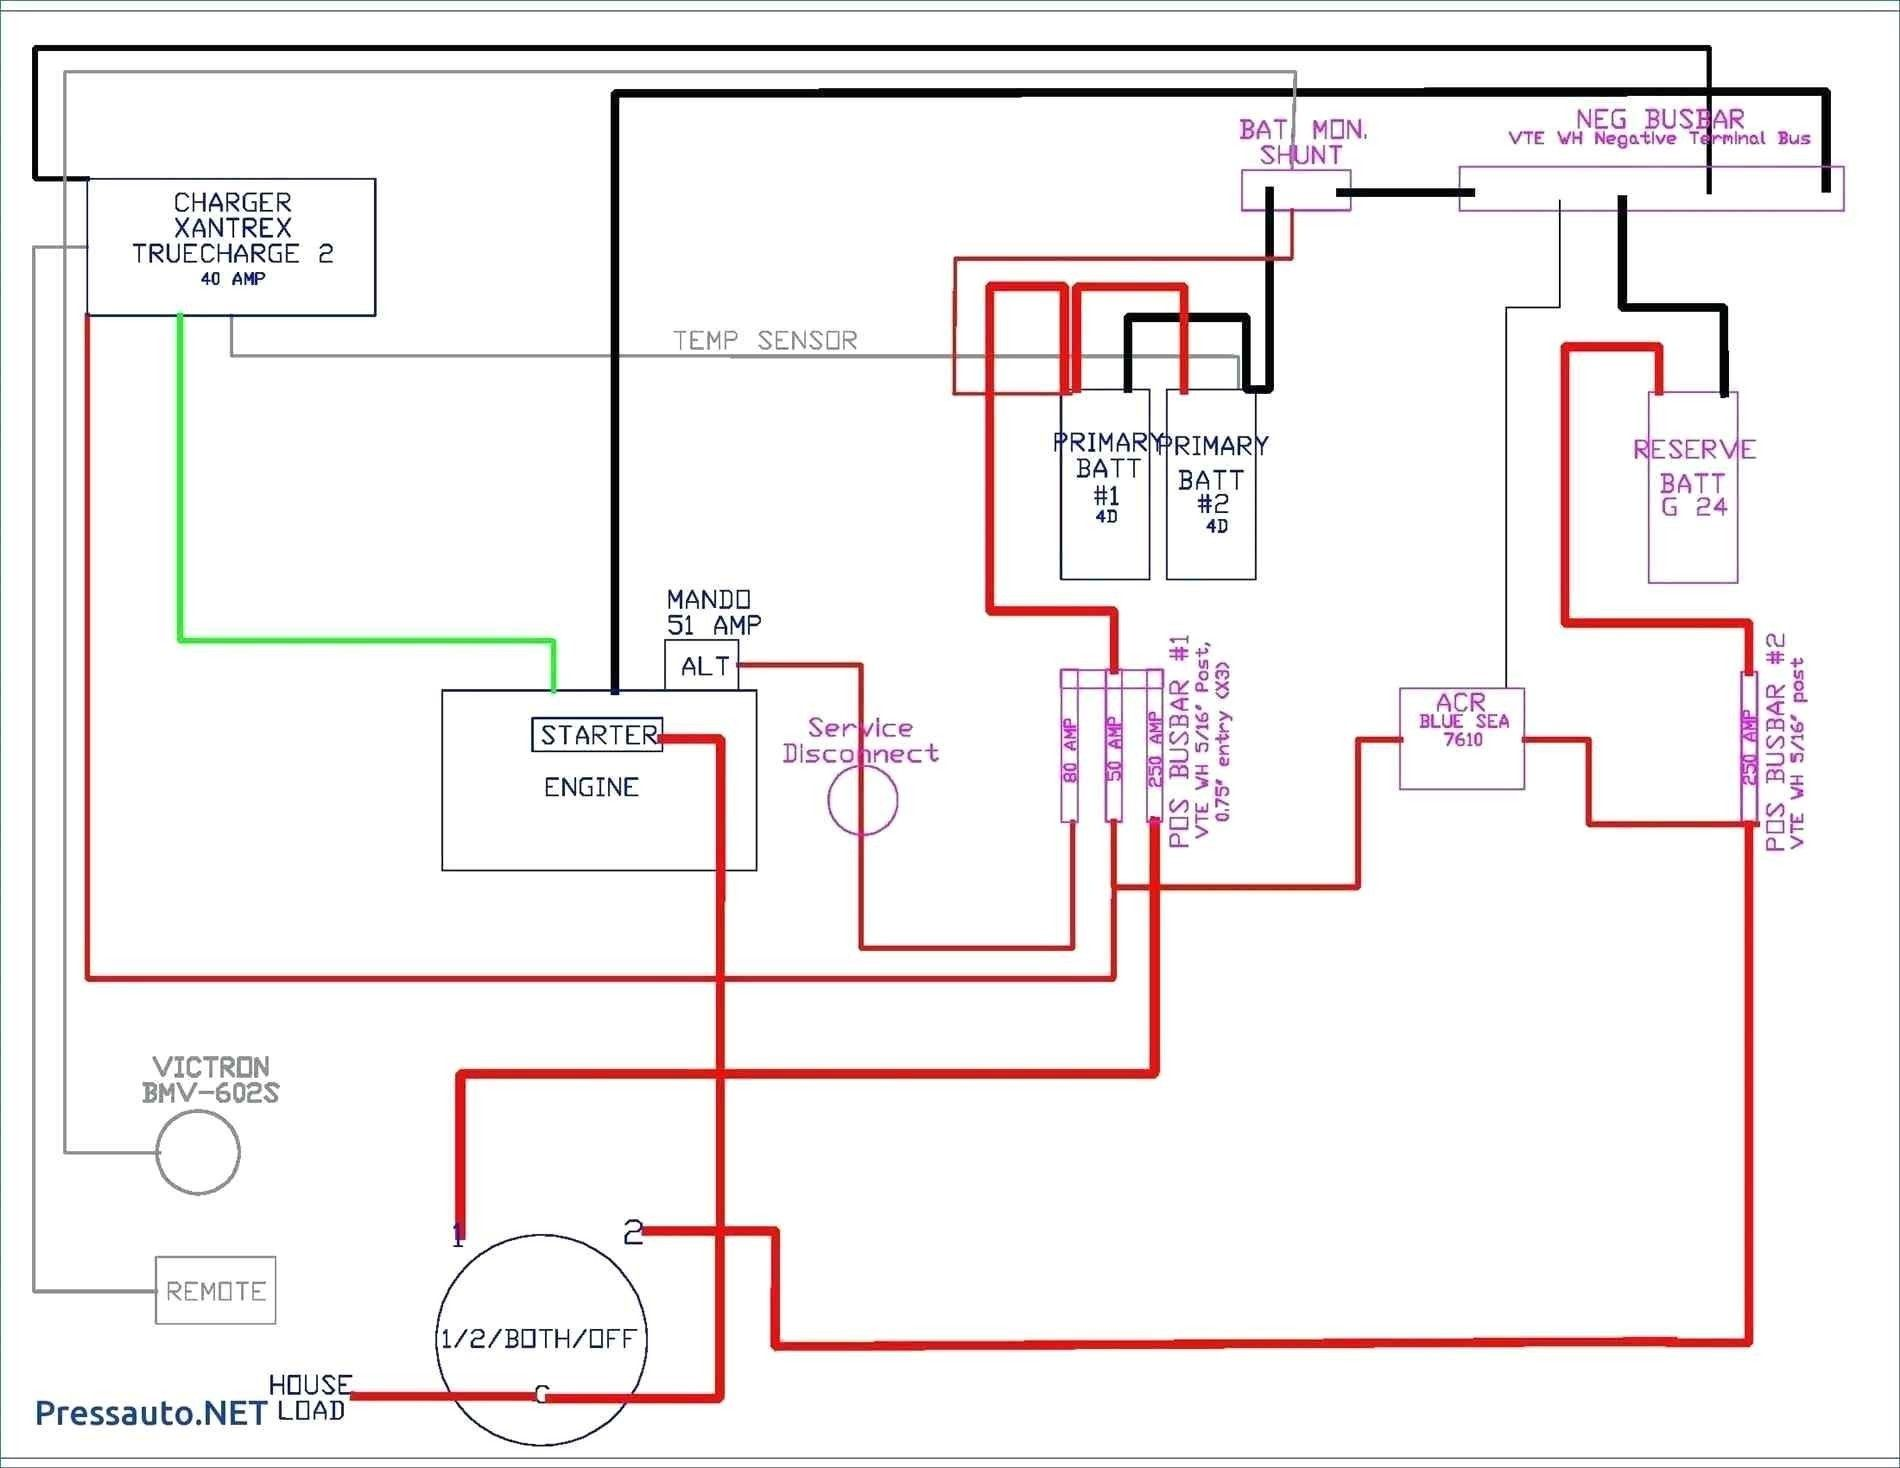 New Wiring Diagram Of the House #diagram #diagramsample #diagramtemplate |  Electrical circuit diagram, Electrical diagram, Circuit diagramPinterest